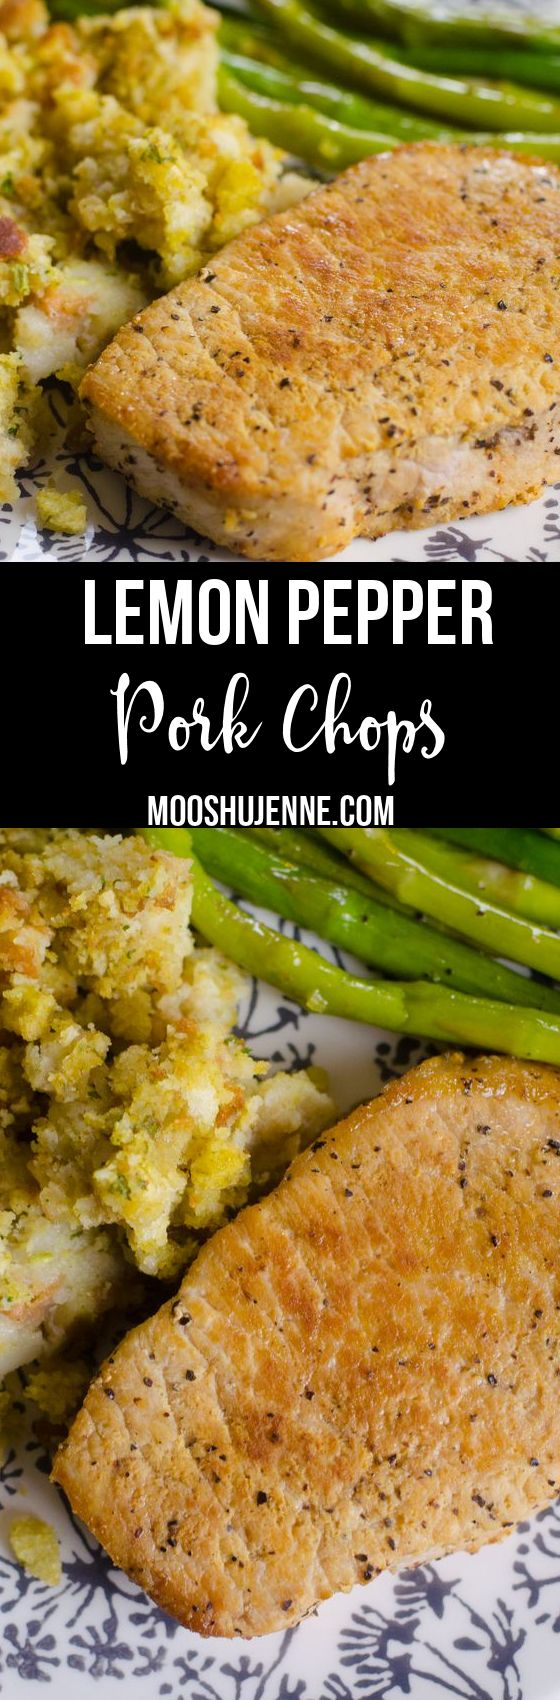 Lemon pepper is that spice that I love on tomatoes or pork. Yes, fresh tomatoes and lemon pepper. Which is why I love these Lemon Pepper Pork Chops via @mooshujenne